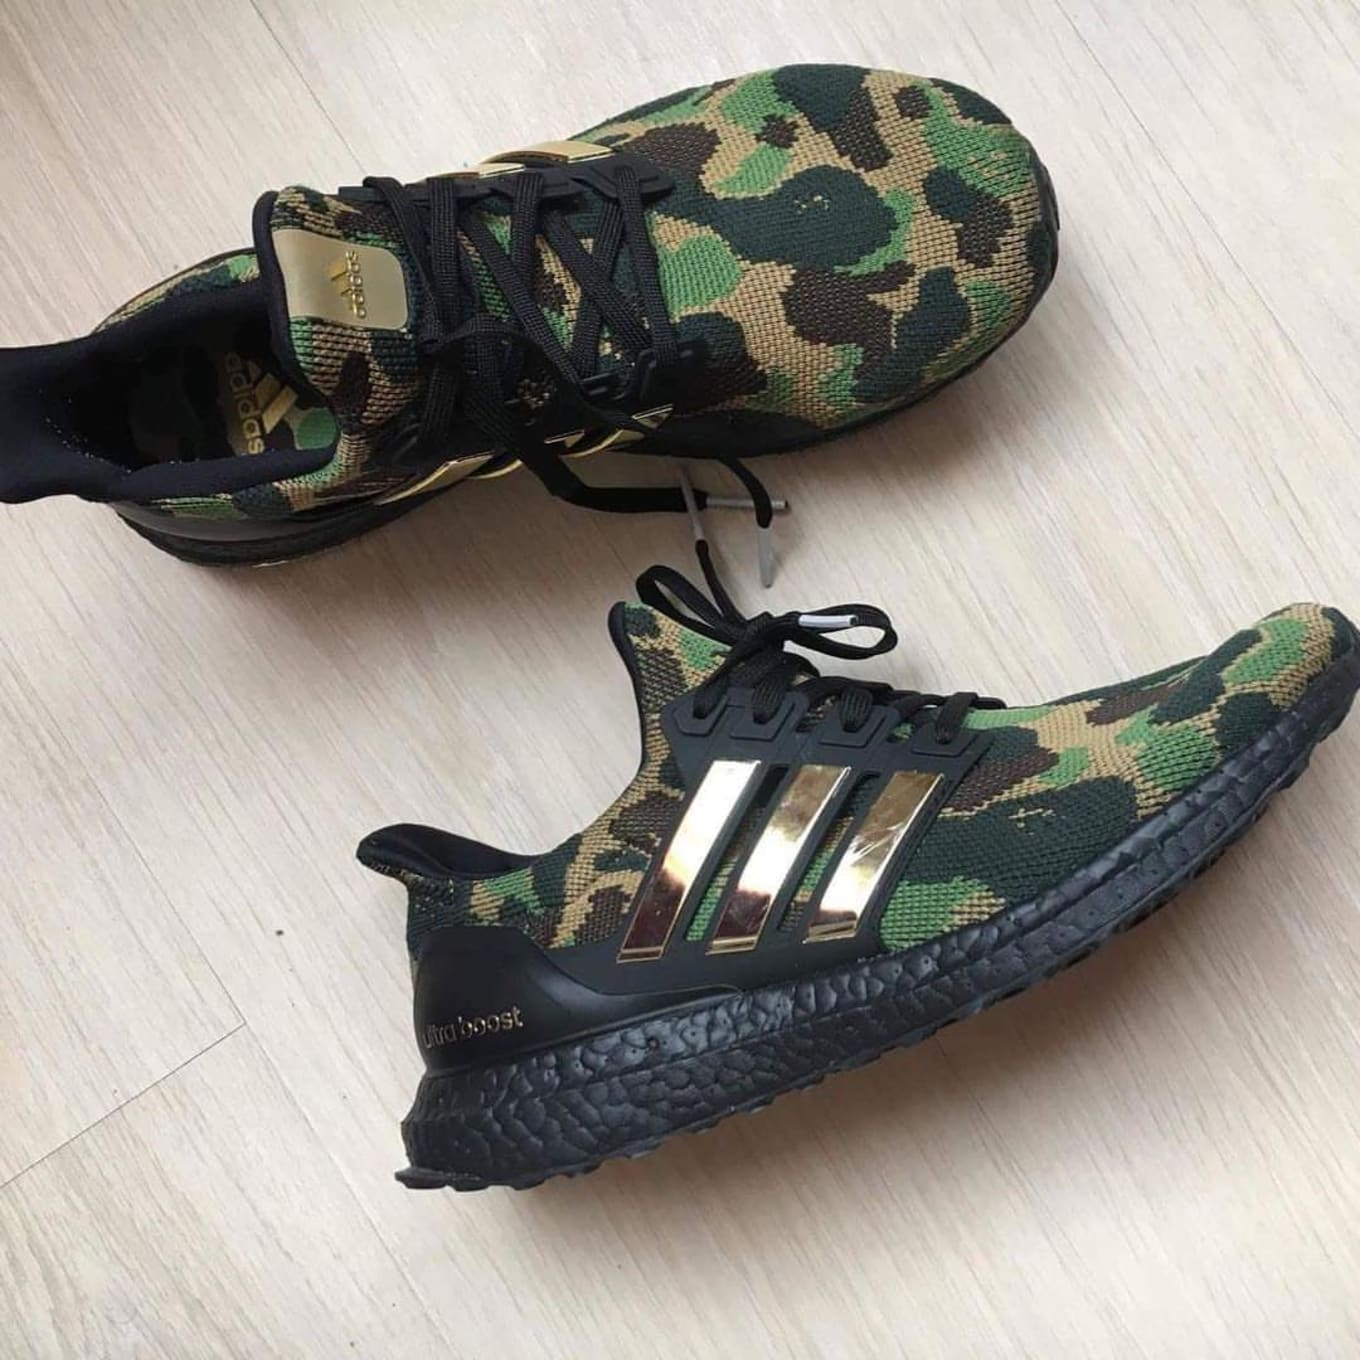 e1d2d4ac0 Bape x Adidas Ultra Boost Collaboration Release Date